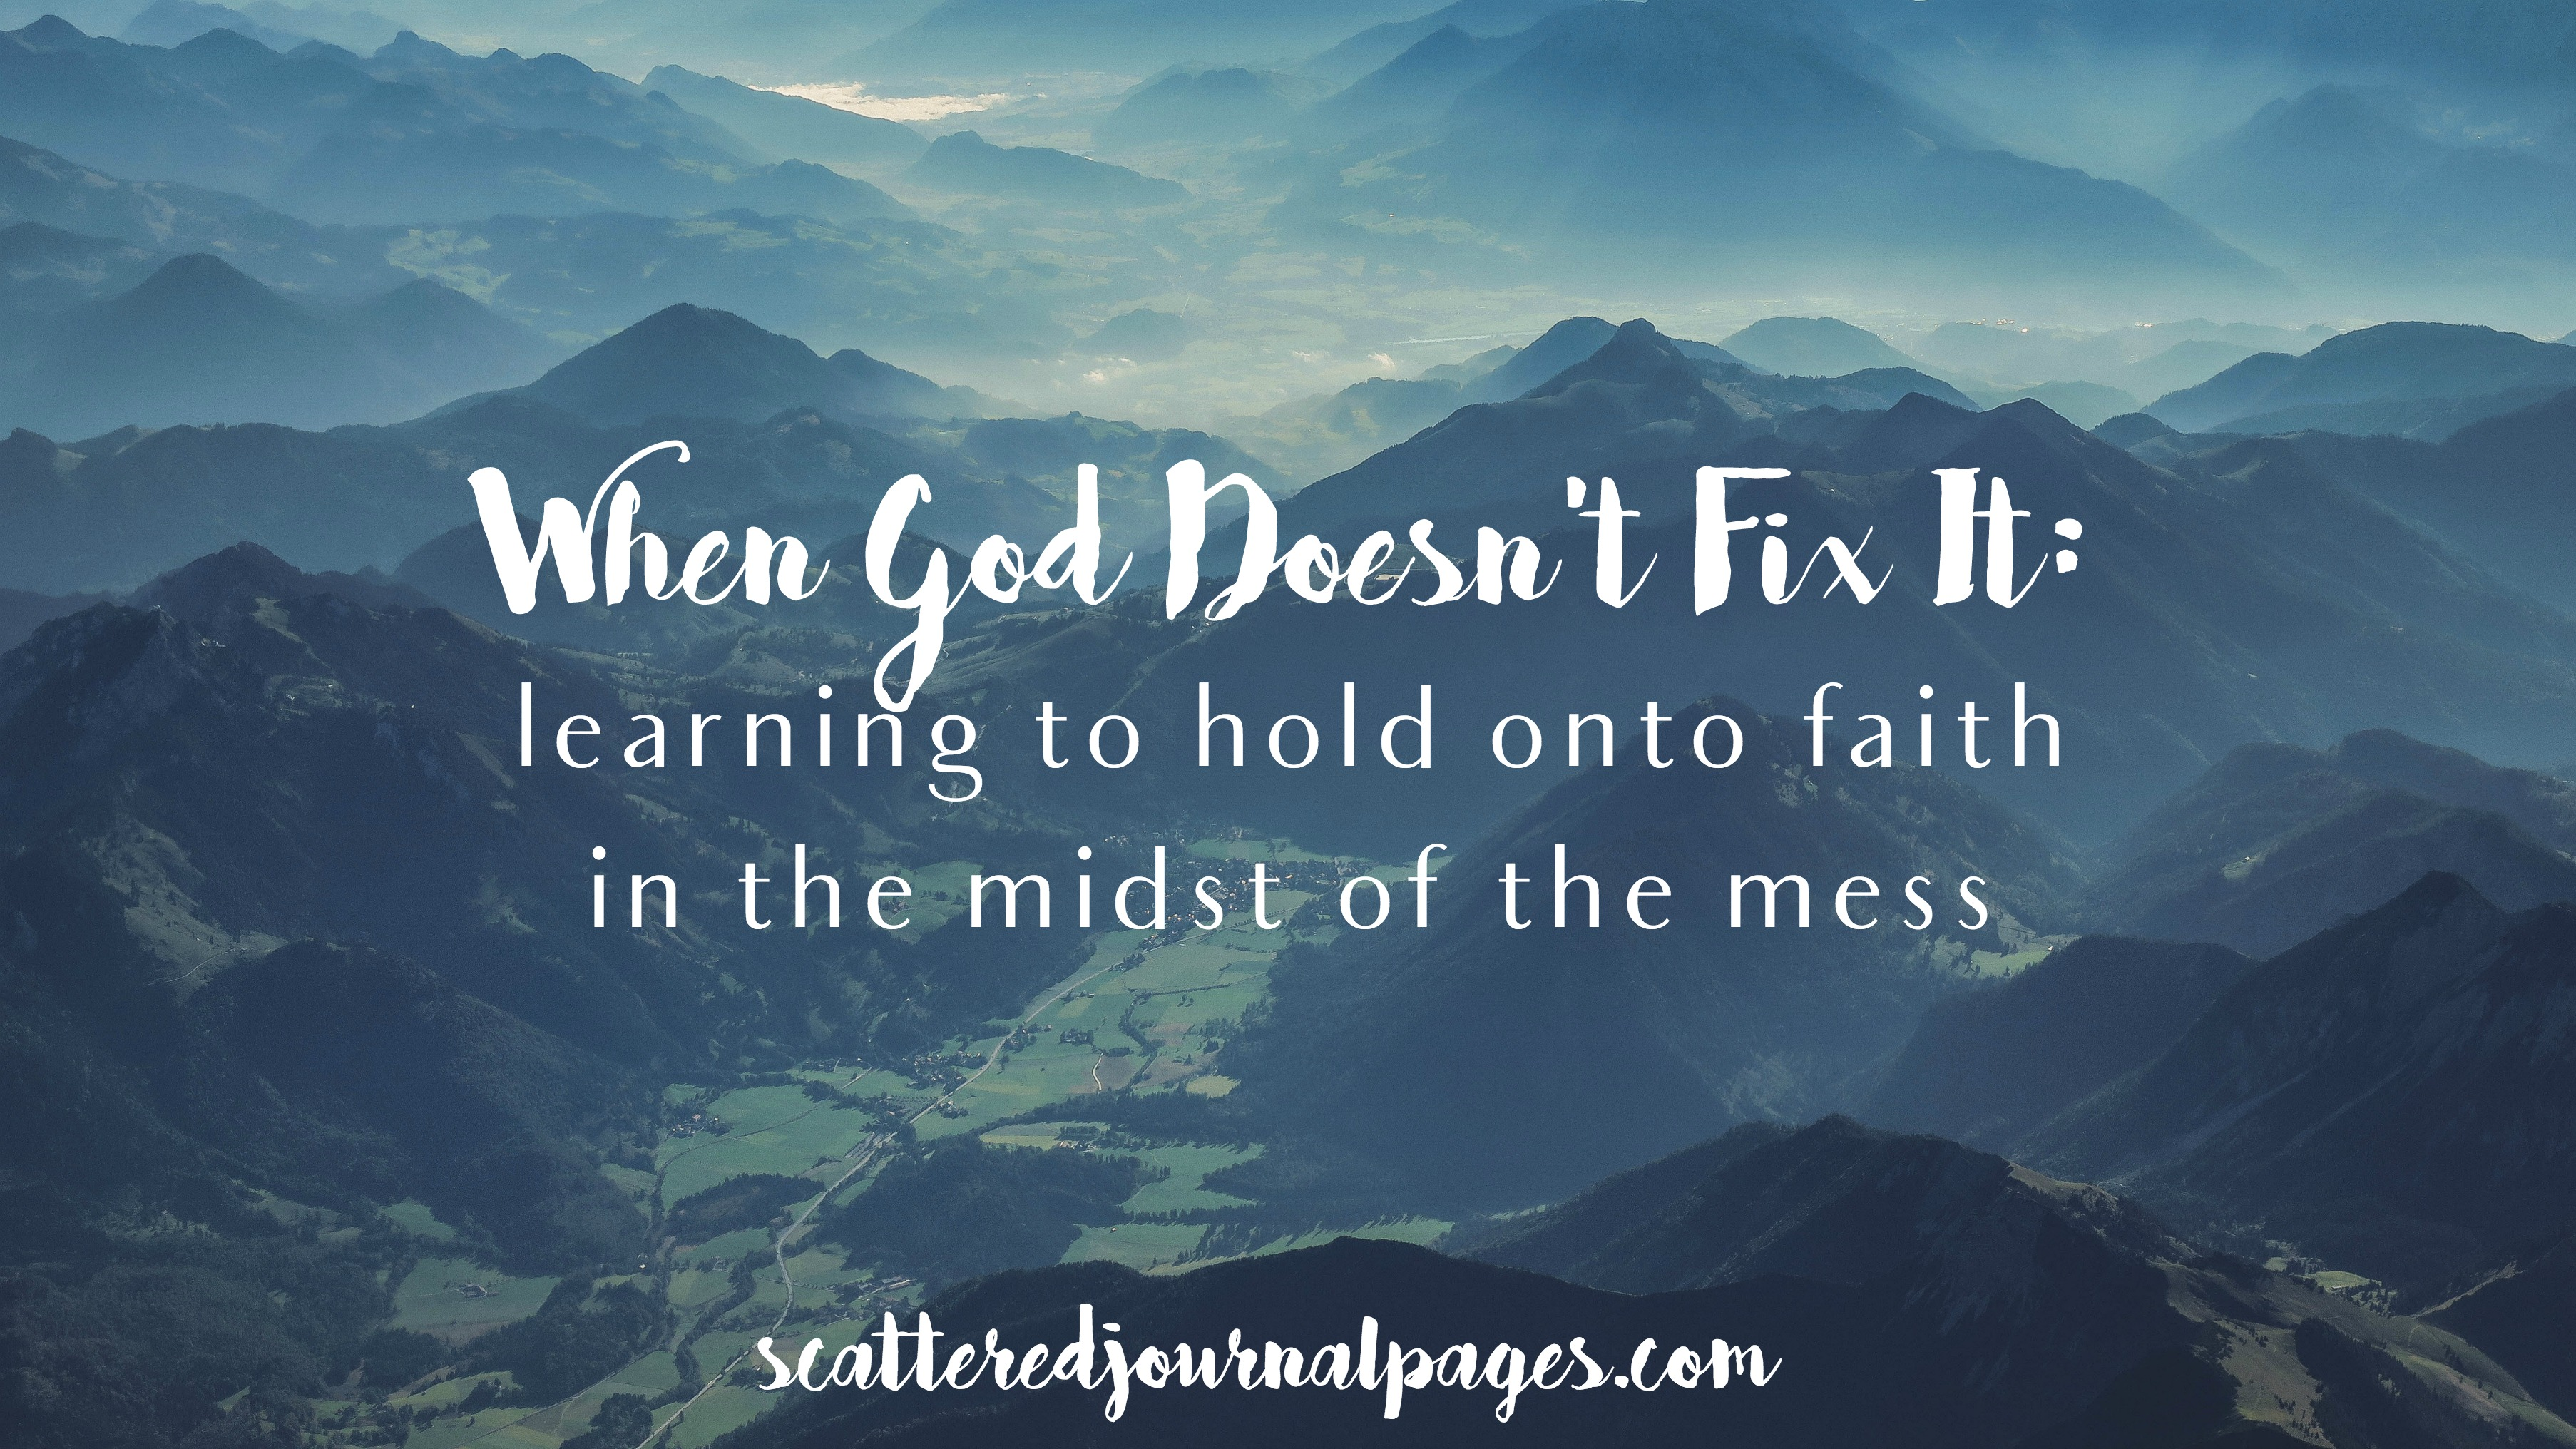 When God Doesn't Fix It learning to hold onto faith in the midst of the mess.jpg